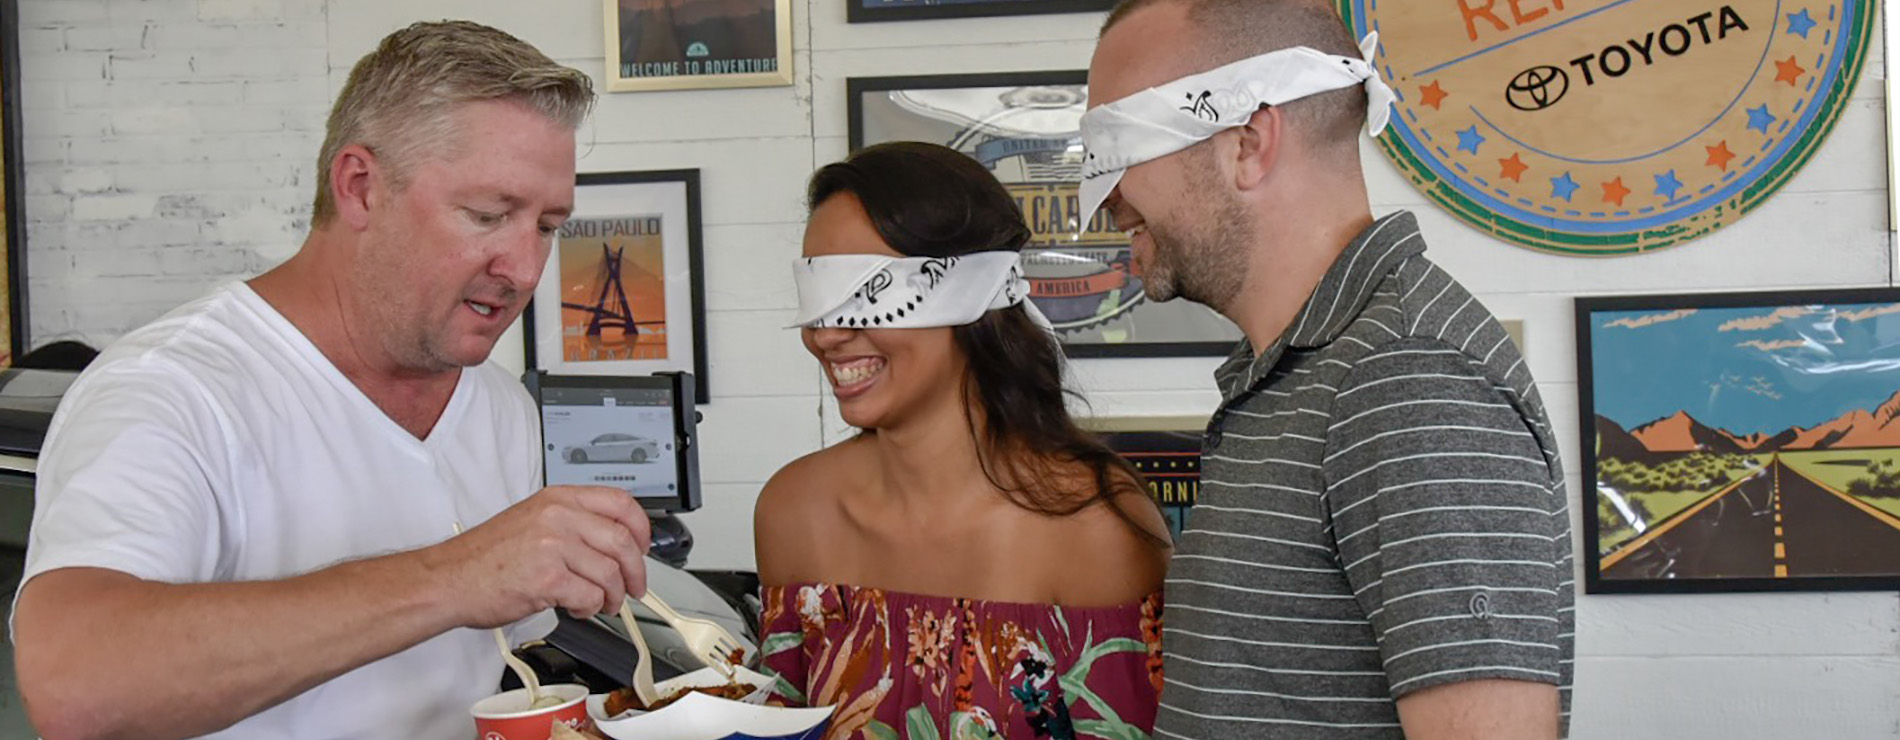 Avalon chef with food in a taste test with two blindfolded people.